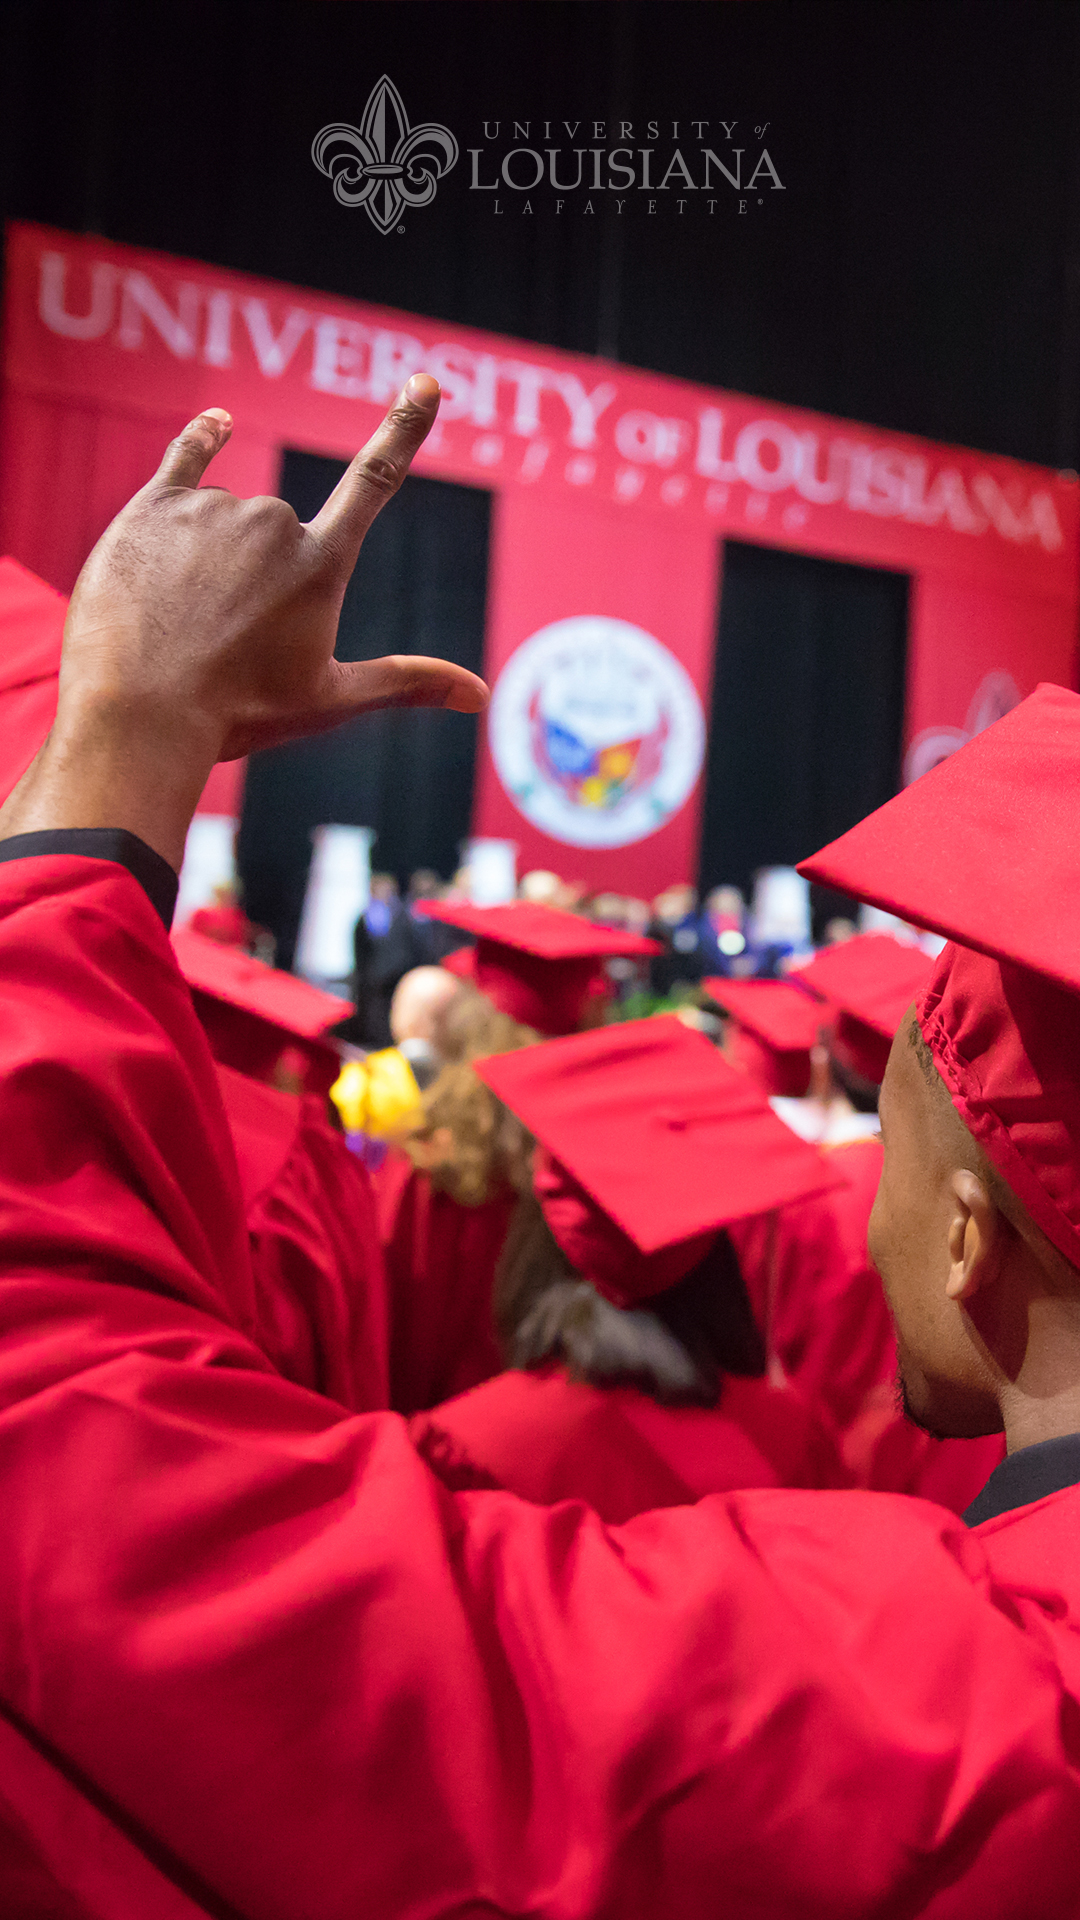 Photo of an African-American UL Lafayette graduate raising his hand in the UL hand sign in front of the University of Louisiana at Lafayette Commencement stage.